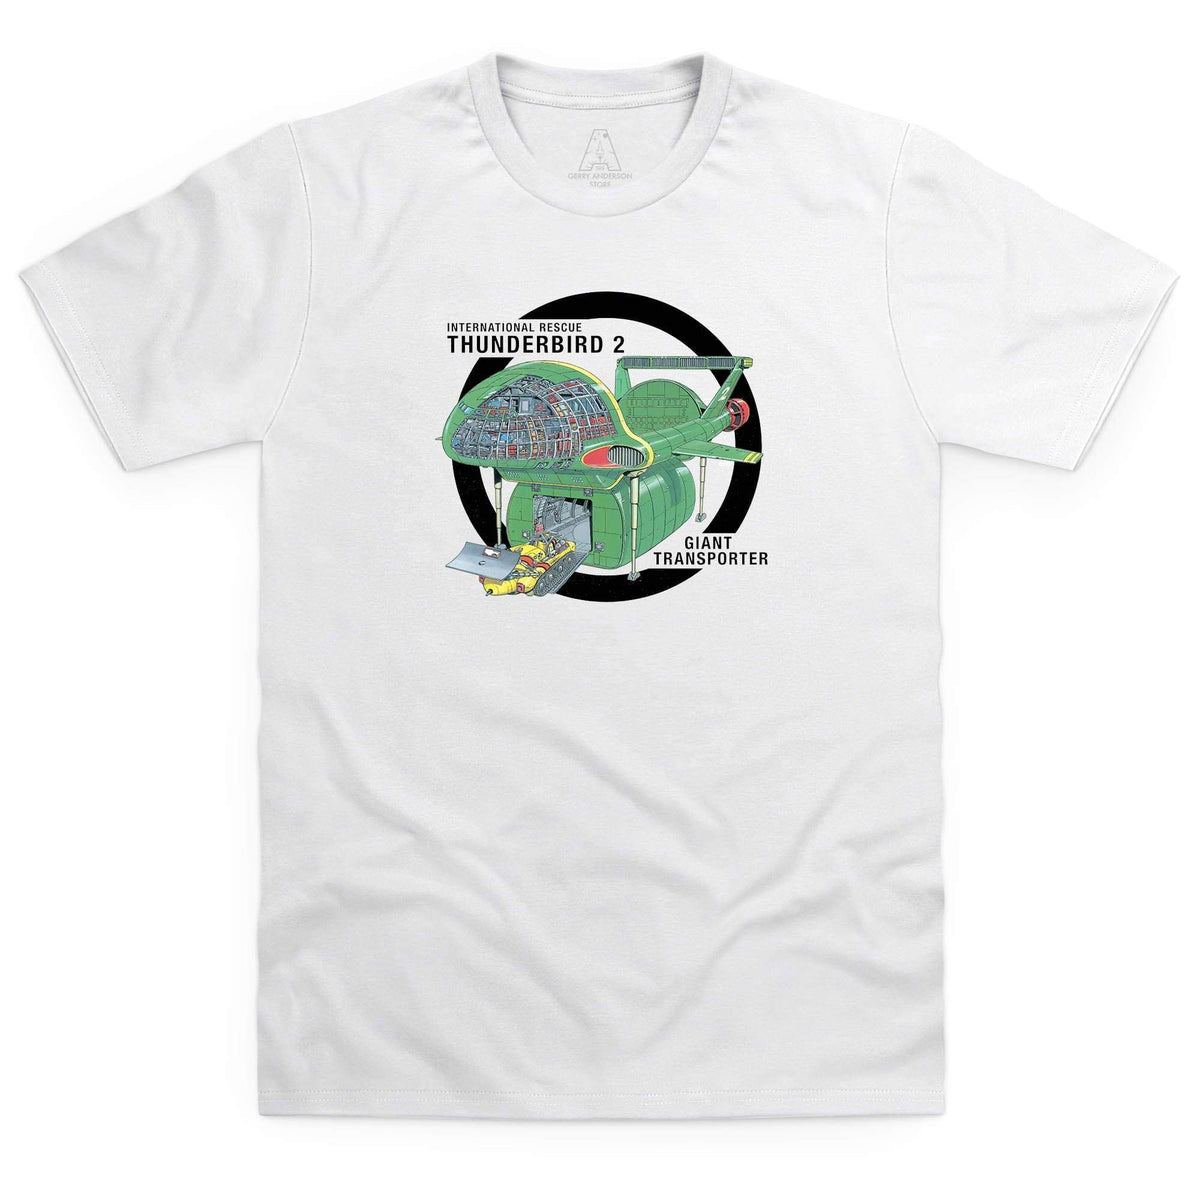 Thunderbirds: Thunderbird 2 Cutaway Men's White T-Shirt [Official & Exclusive] - The Gerry Anderson Store